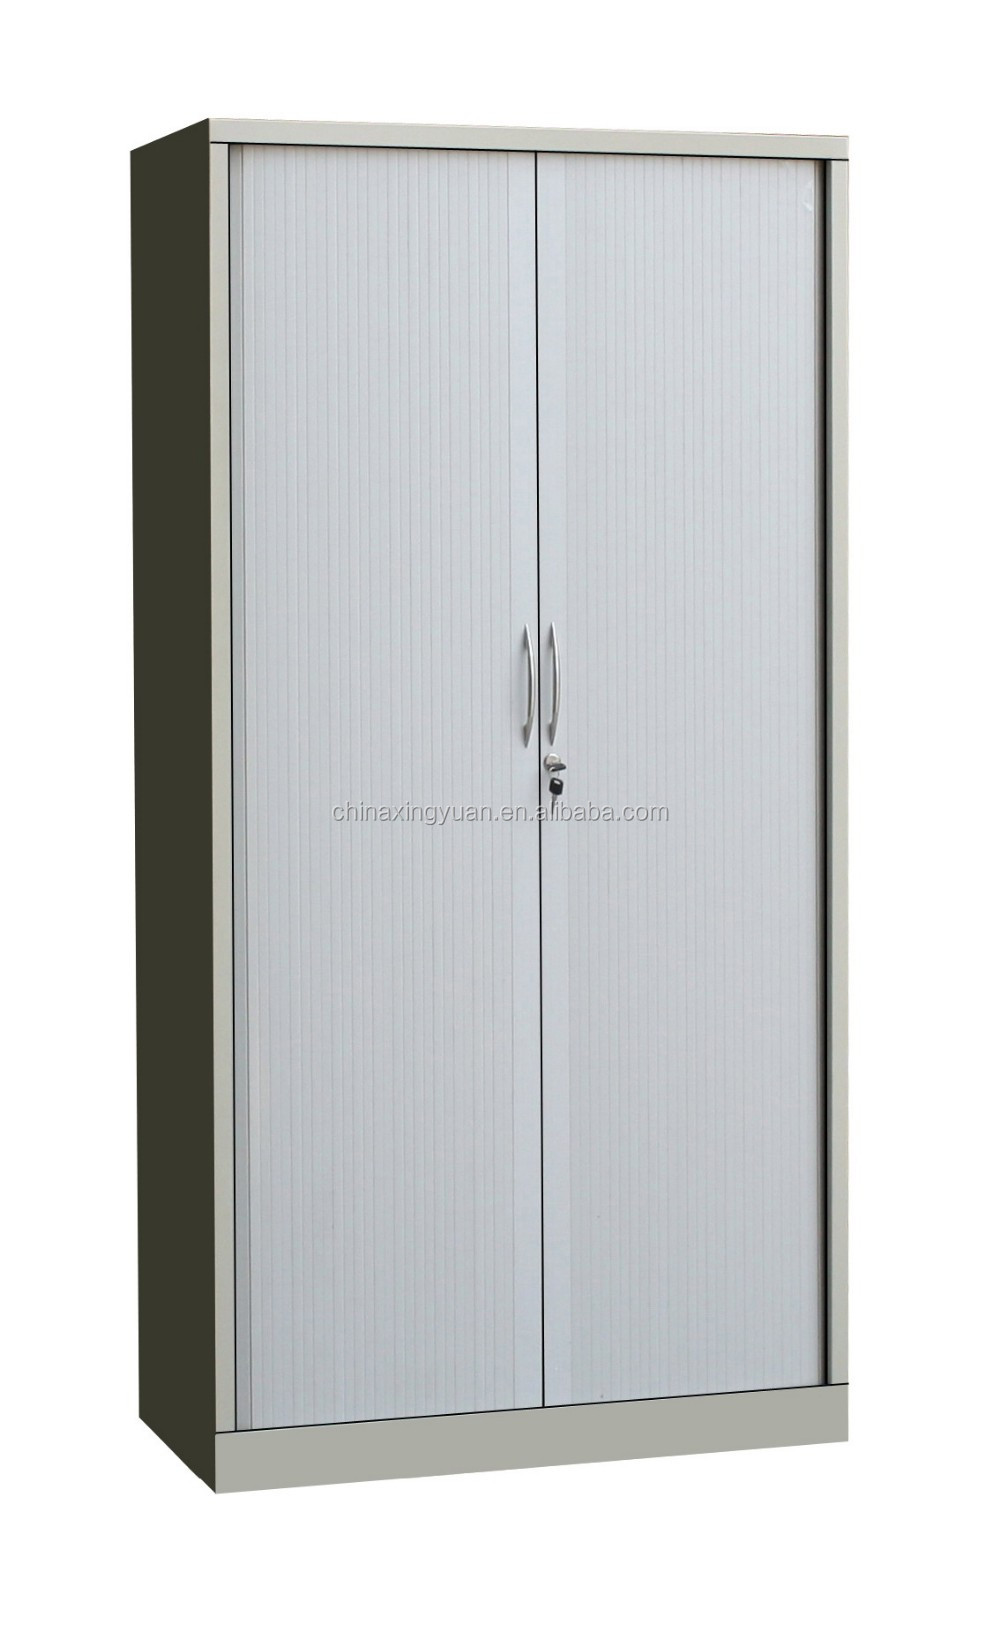 Roller Shutter Kitchen Doors Roller Doors For Cupboards Roller Doors For Cupboards Suppliers